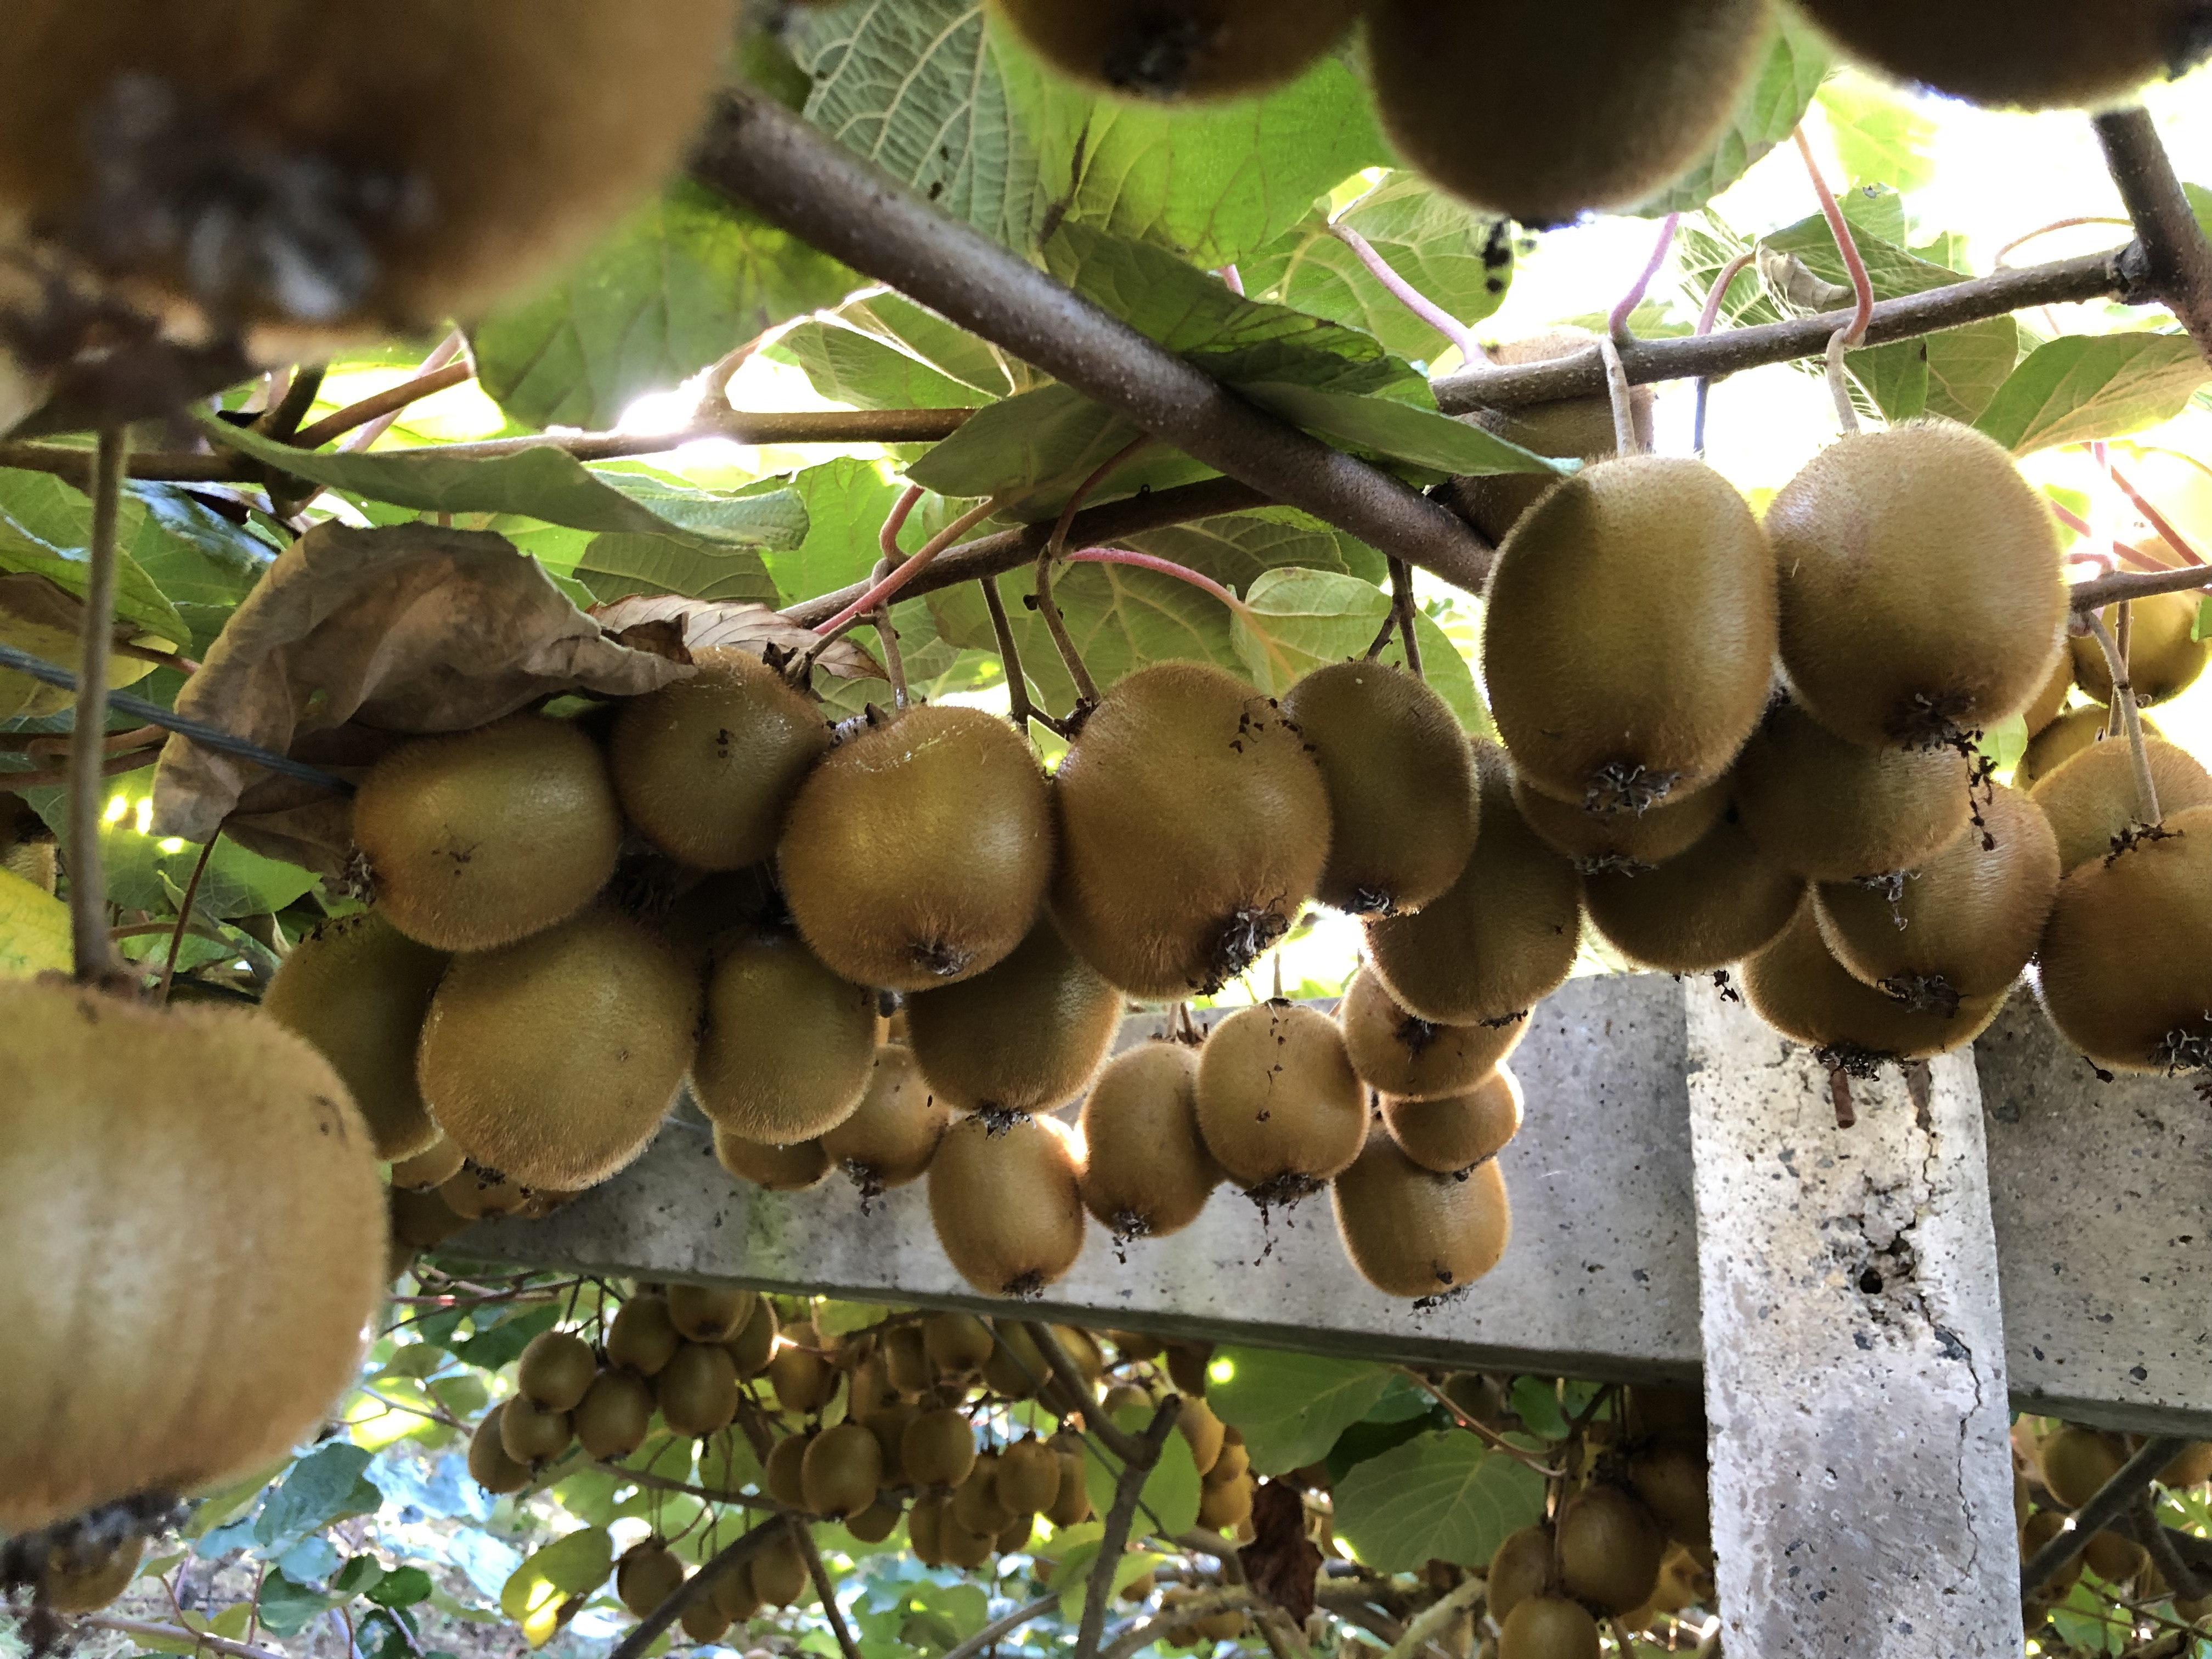 http://www.omu.edu.tr/sites/default/files/files/faculty_of_agricultures_kiwifruits_are_on_sale/omu_kivi_2018_4.jpeg